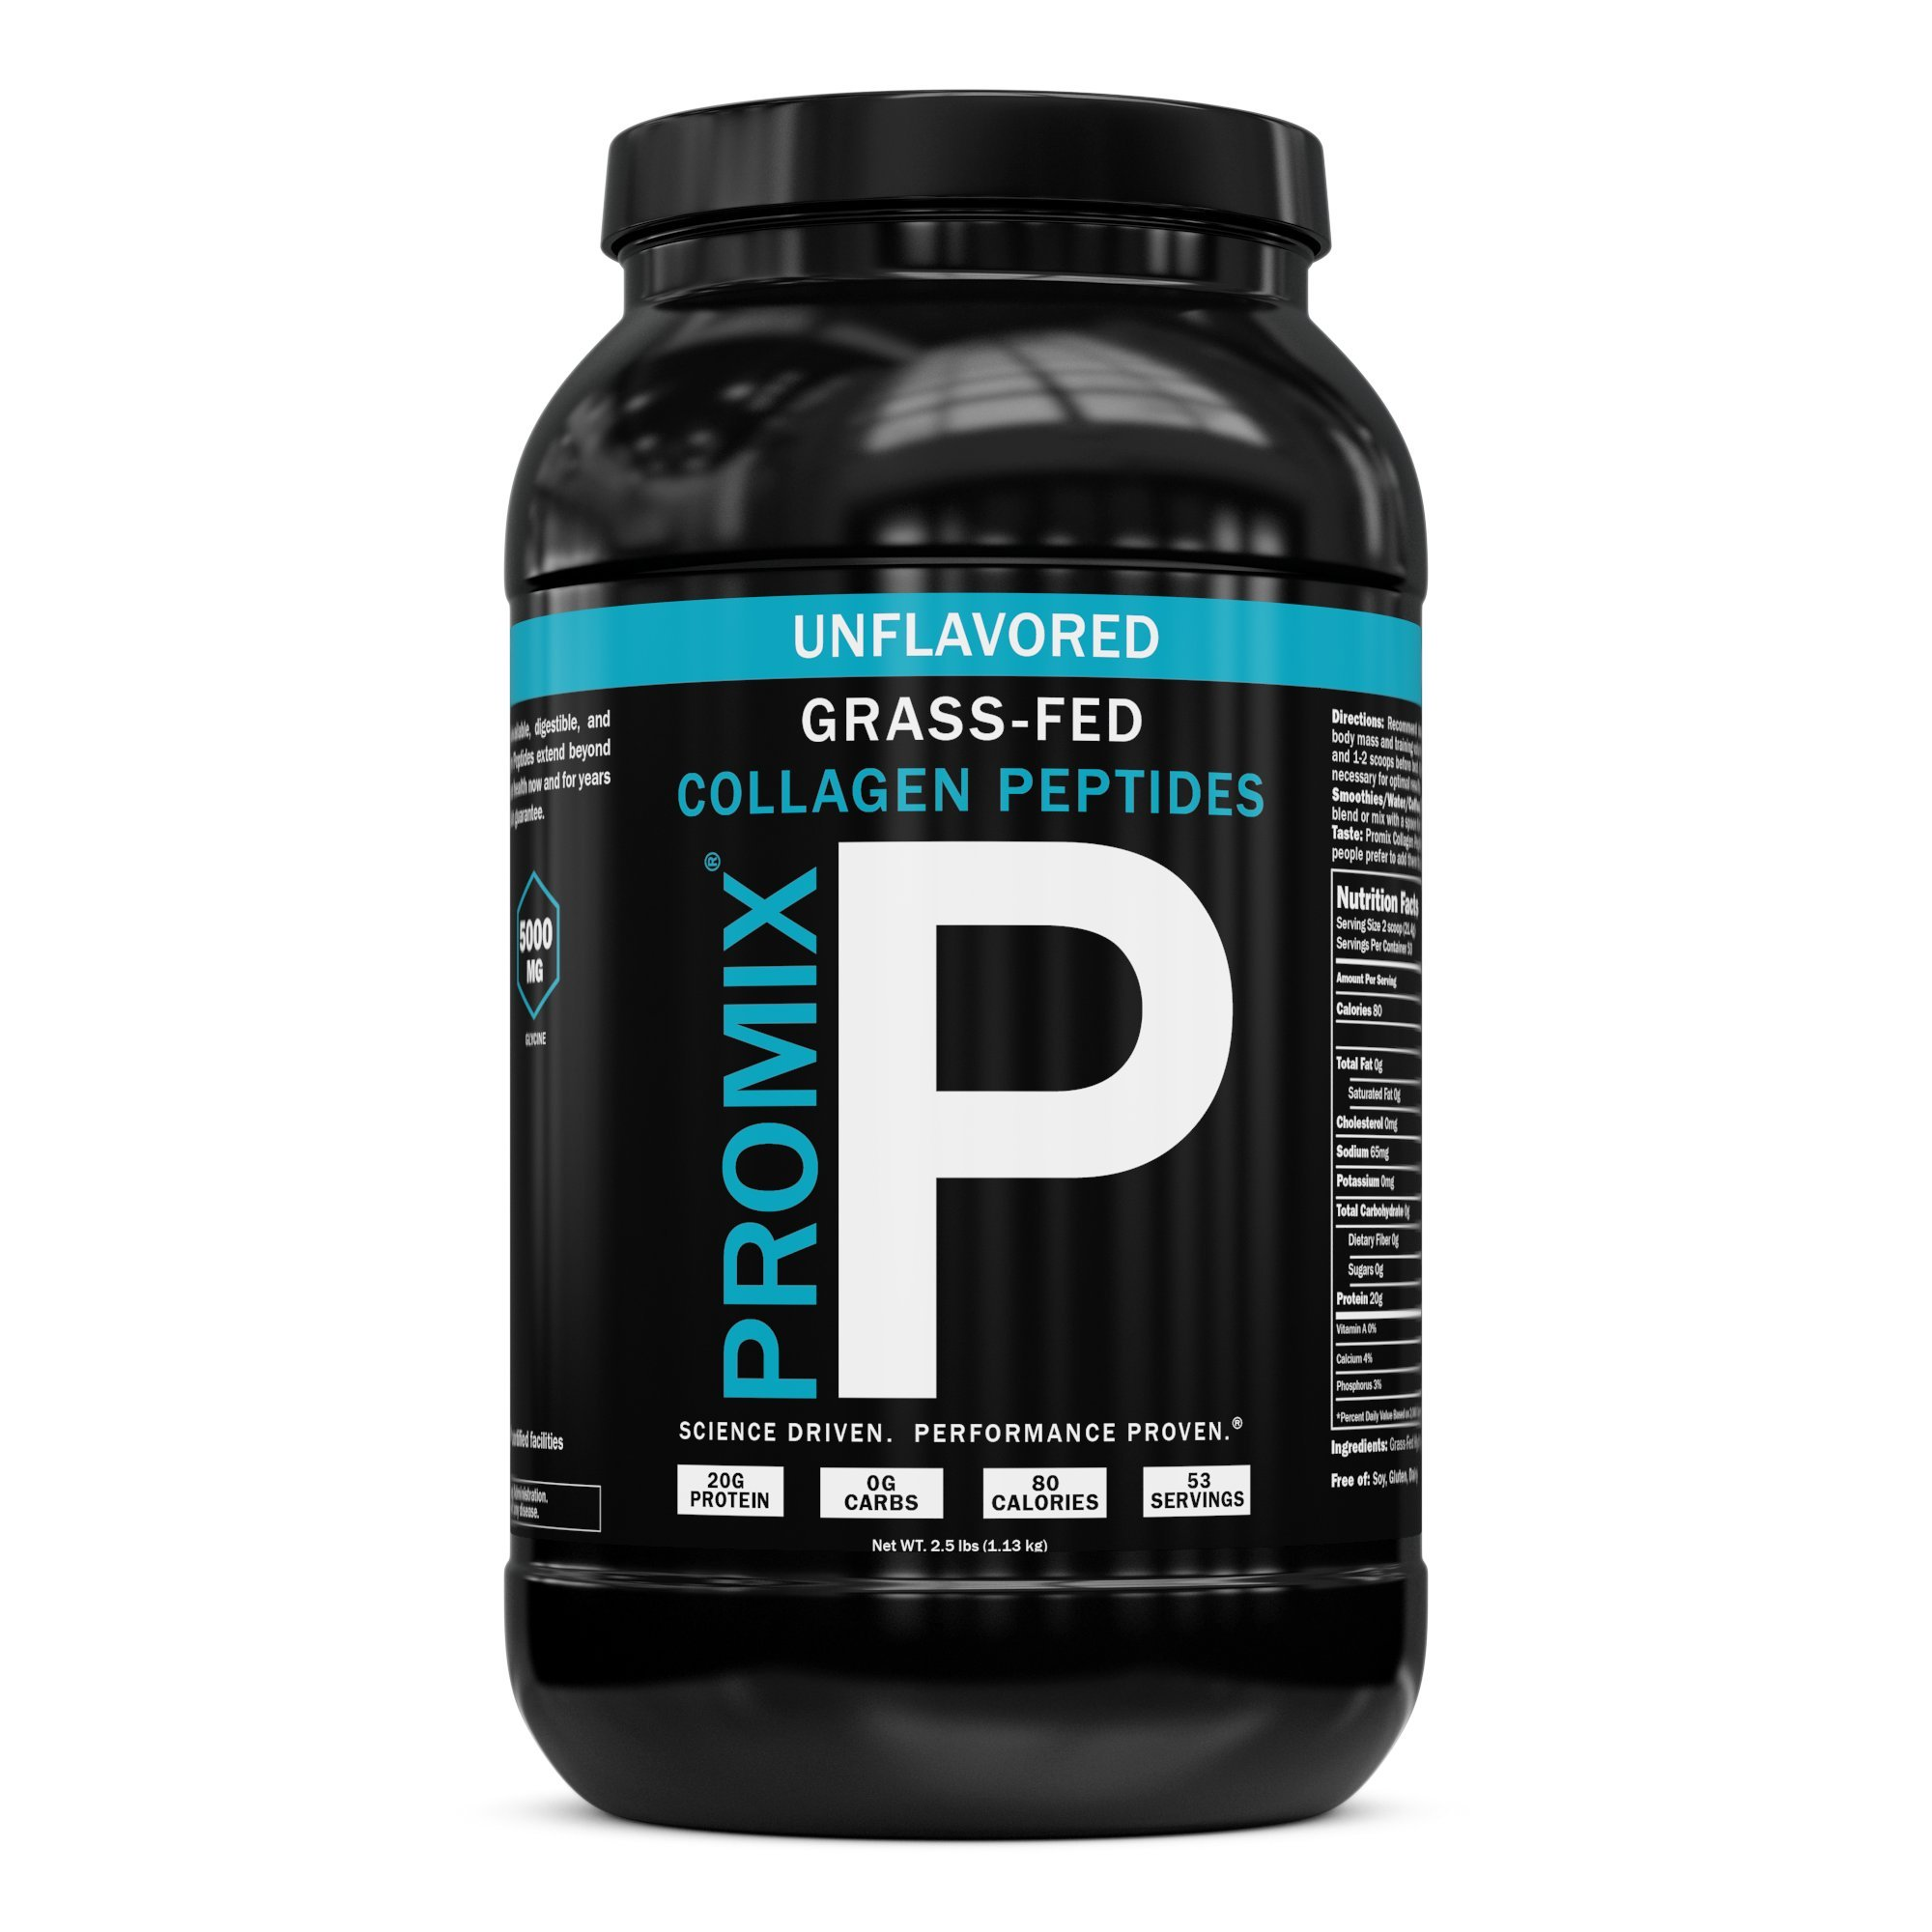 PROMIX Collagen Peptides Protein Powder, Pasture-Raised Grass Fed Hydrolysate | Unflavored, 2.5lbs | Keto, Non GMO, Gluten Free, Natural, Organic, Hydrolyzed | For Healthy Skin, Bones, Hair and Joints